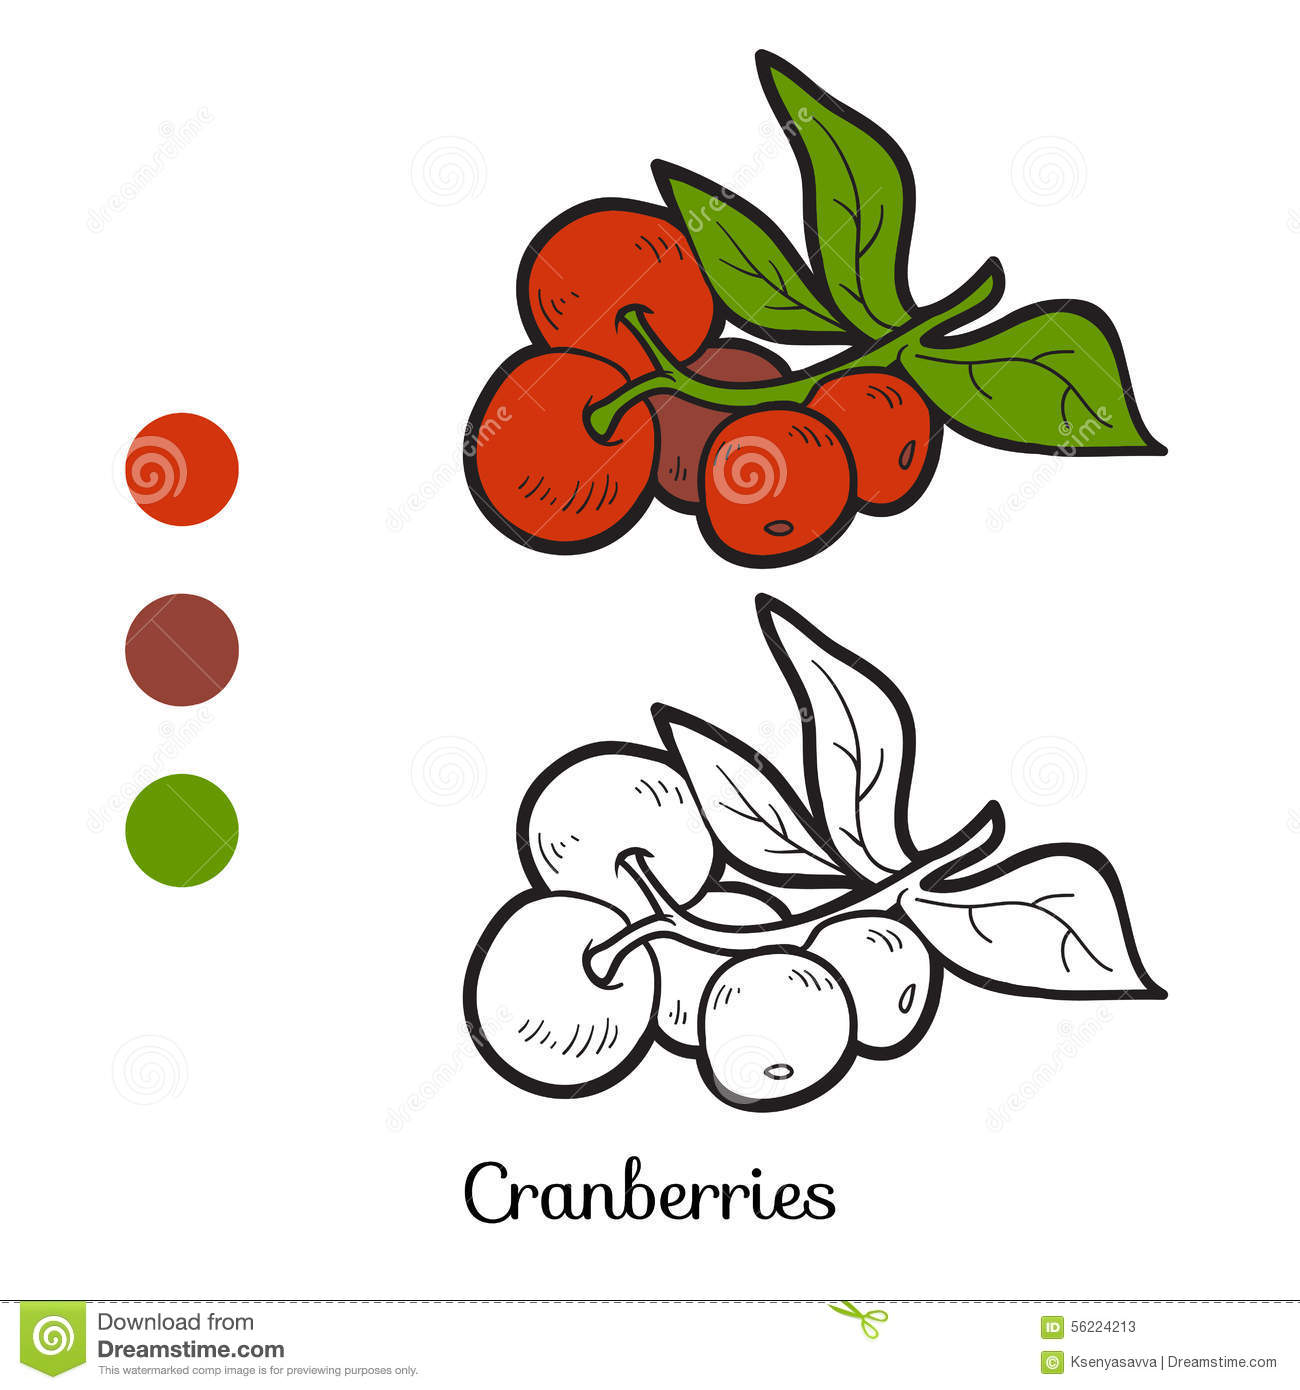 cranberry coloring pages kids - photo#10